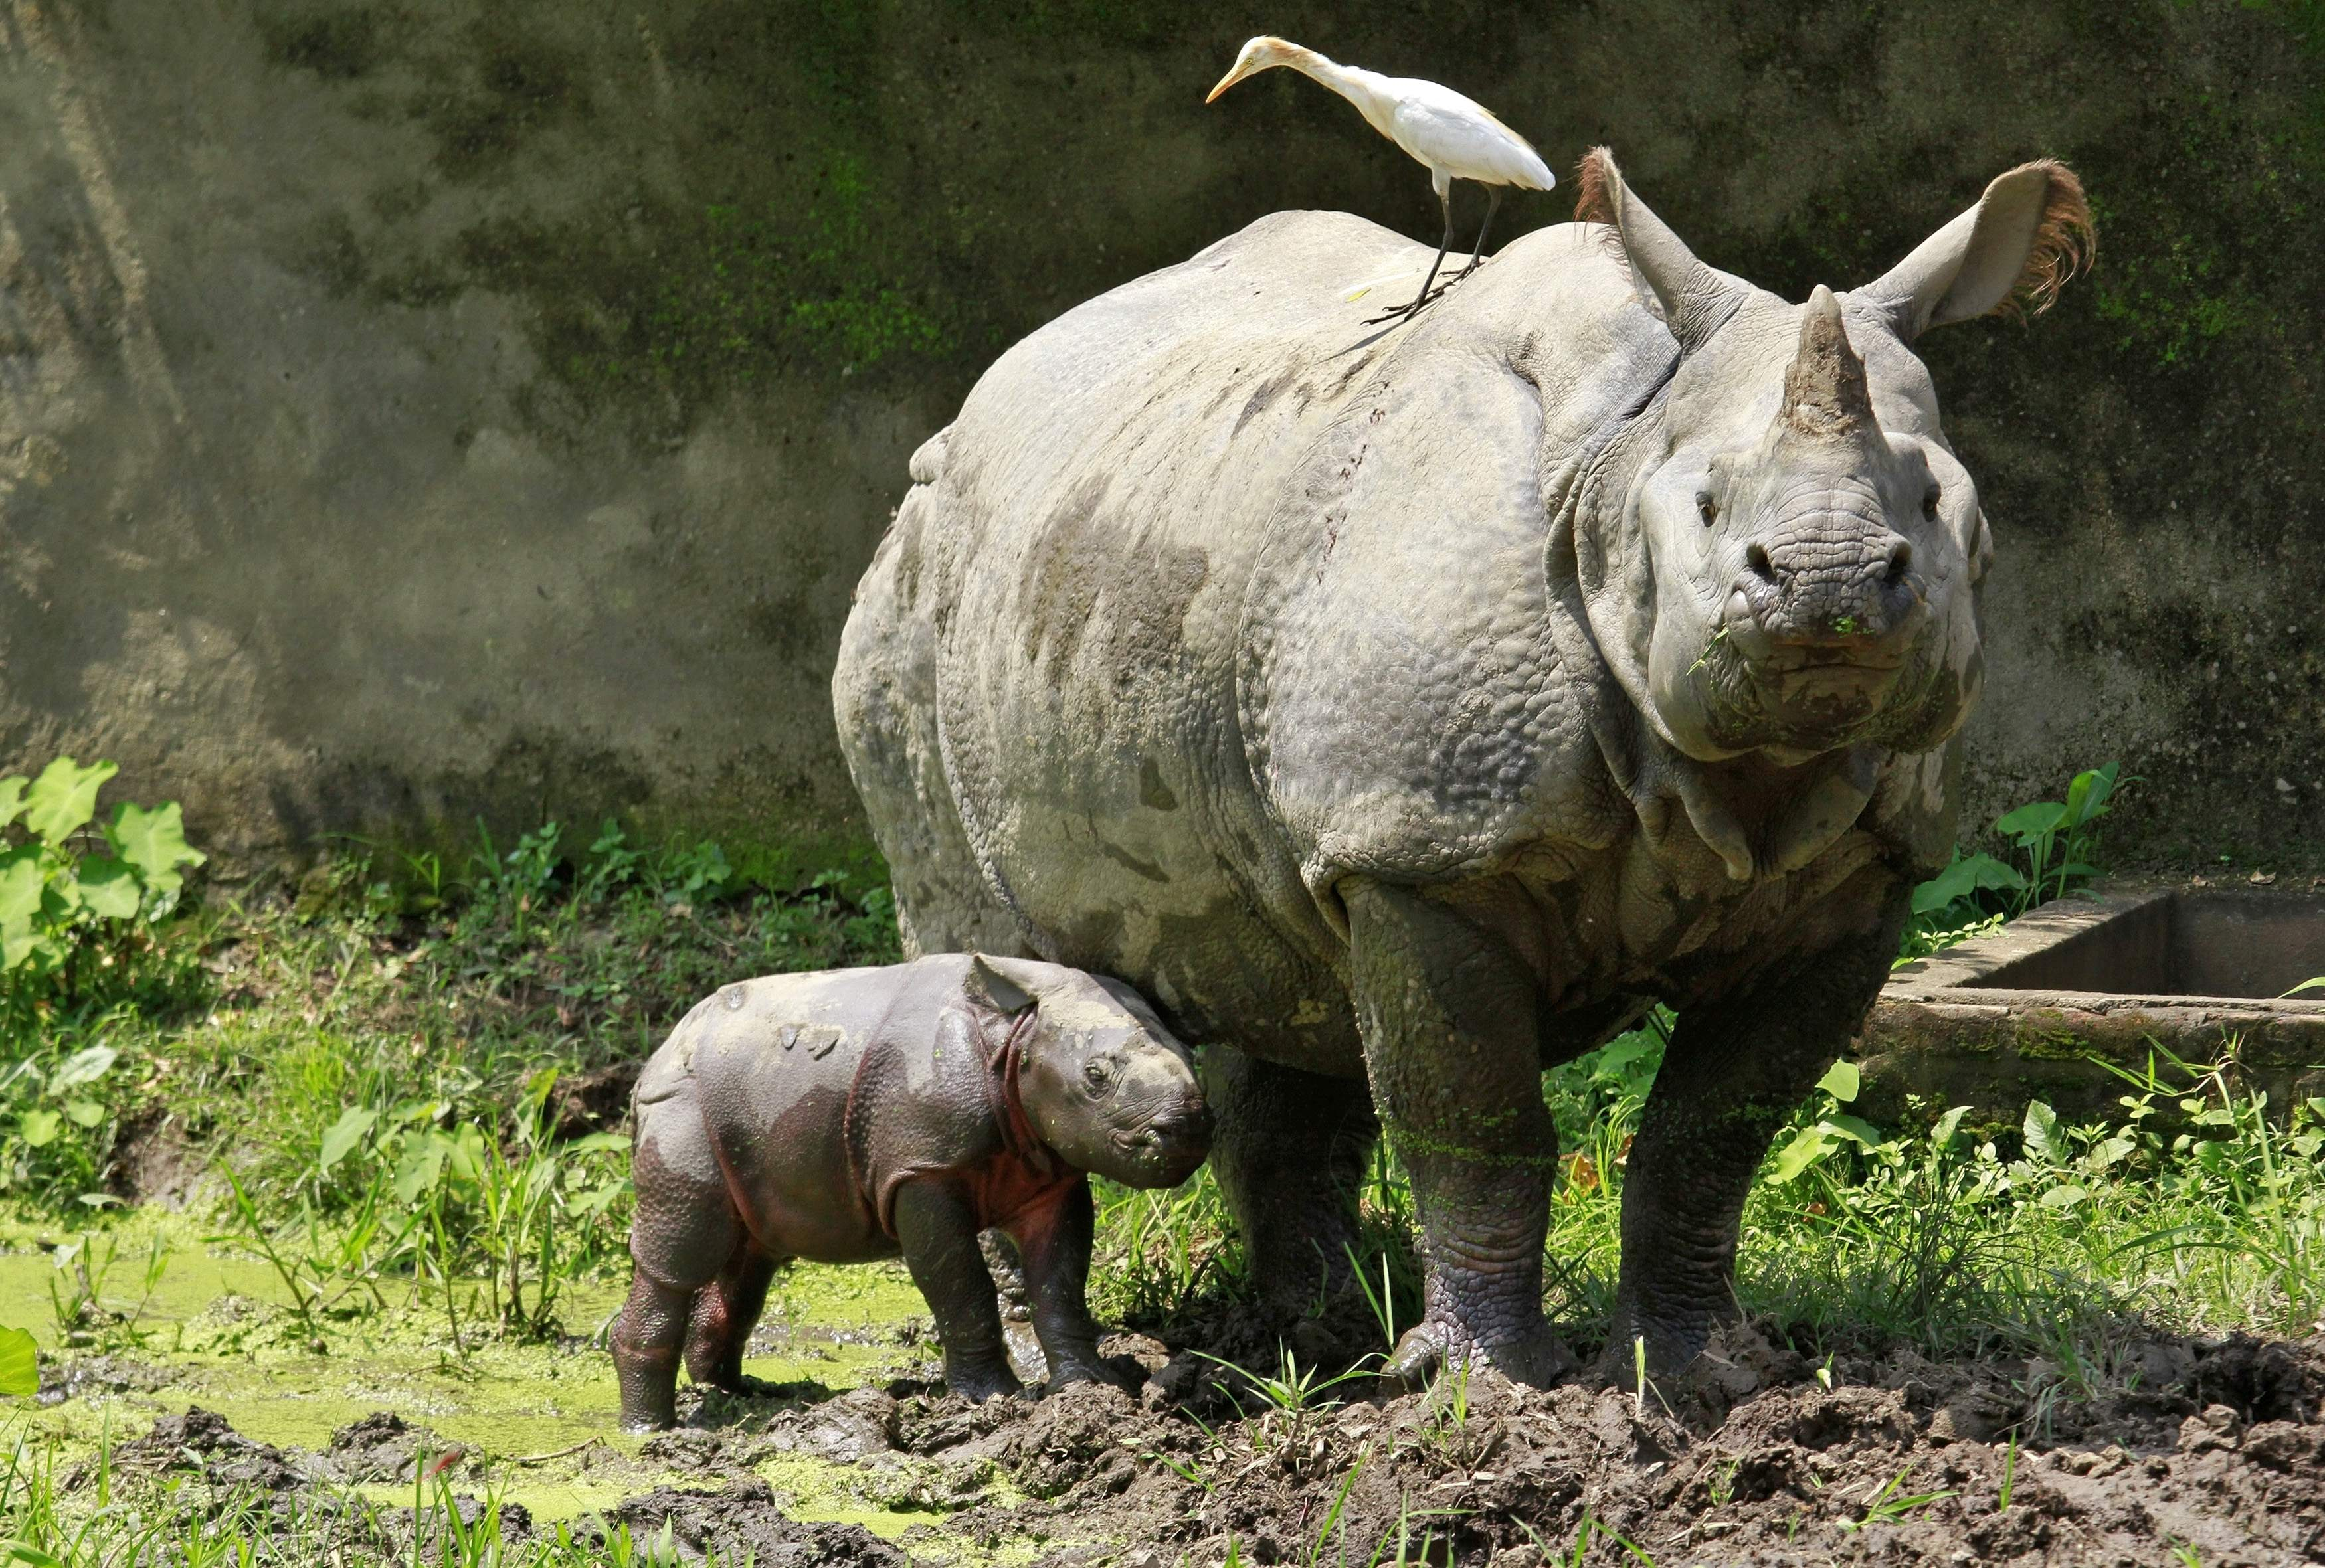 A one-horned rhino named Baghekhaity stands next to its 10-day-old calf at a zoo in Guwahati, in the northeastern Indian state of Assam, September 10, 2013. The calf was born on September 1 under the conservation breeding programme for one-horned rhinos in the state, local media reported. REUTERS/Utpal Baruah (INDIA - Tags: ANIMALS) - RTX13FCW